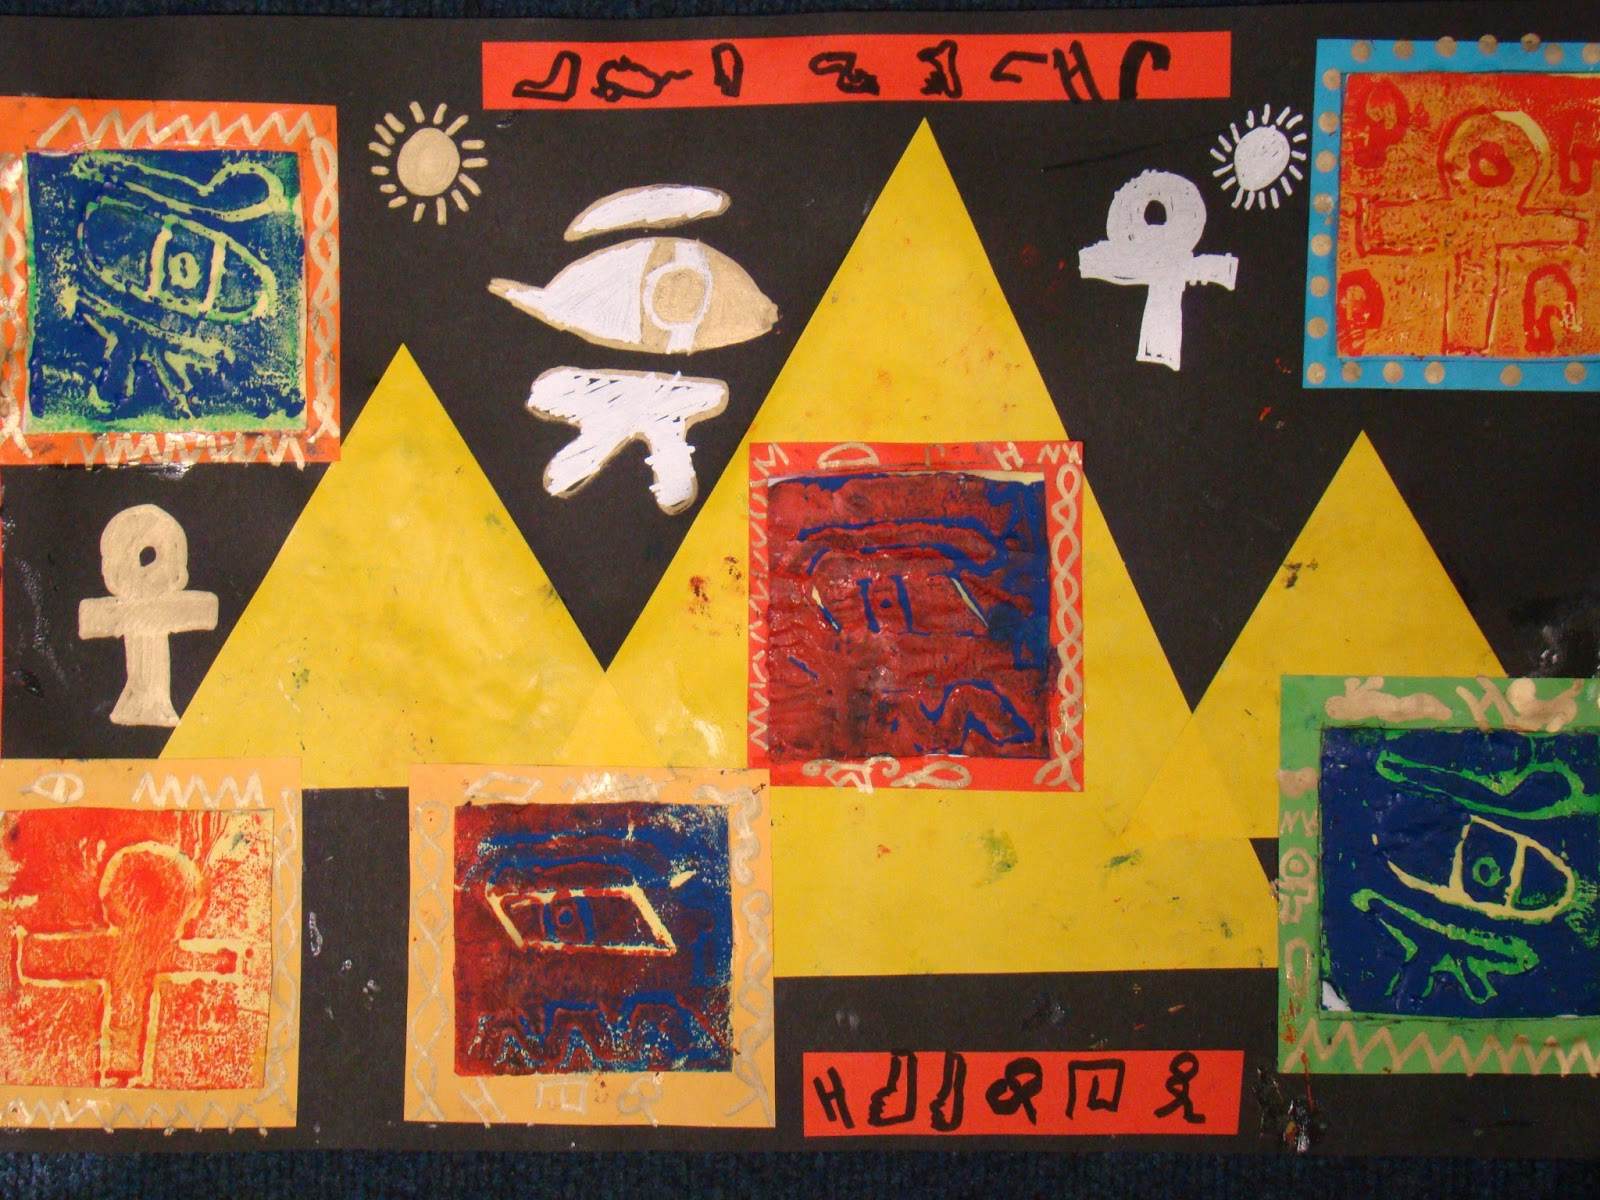 Hitcham S Blog Stunning Egyptian Art Work By Class Ga Vr